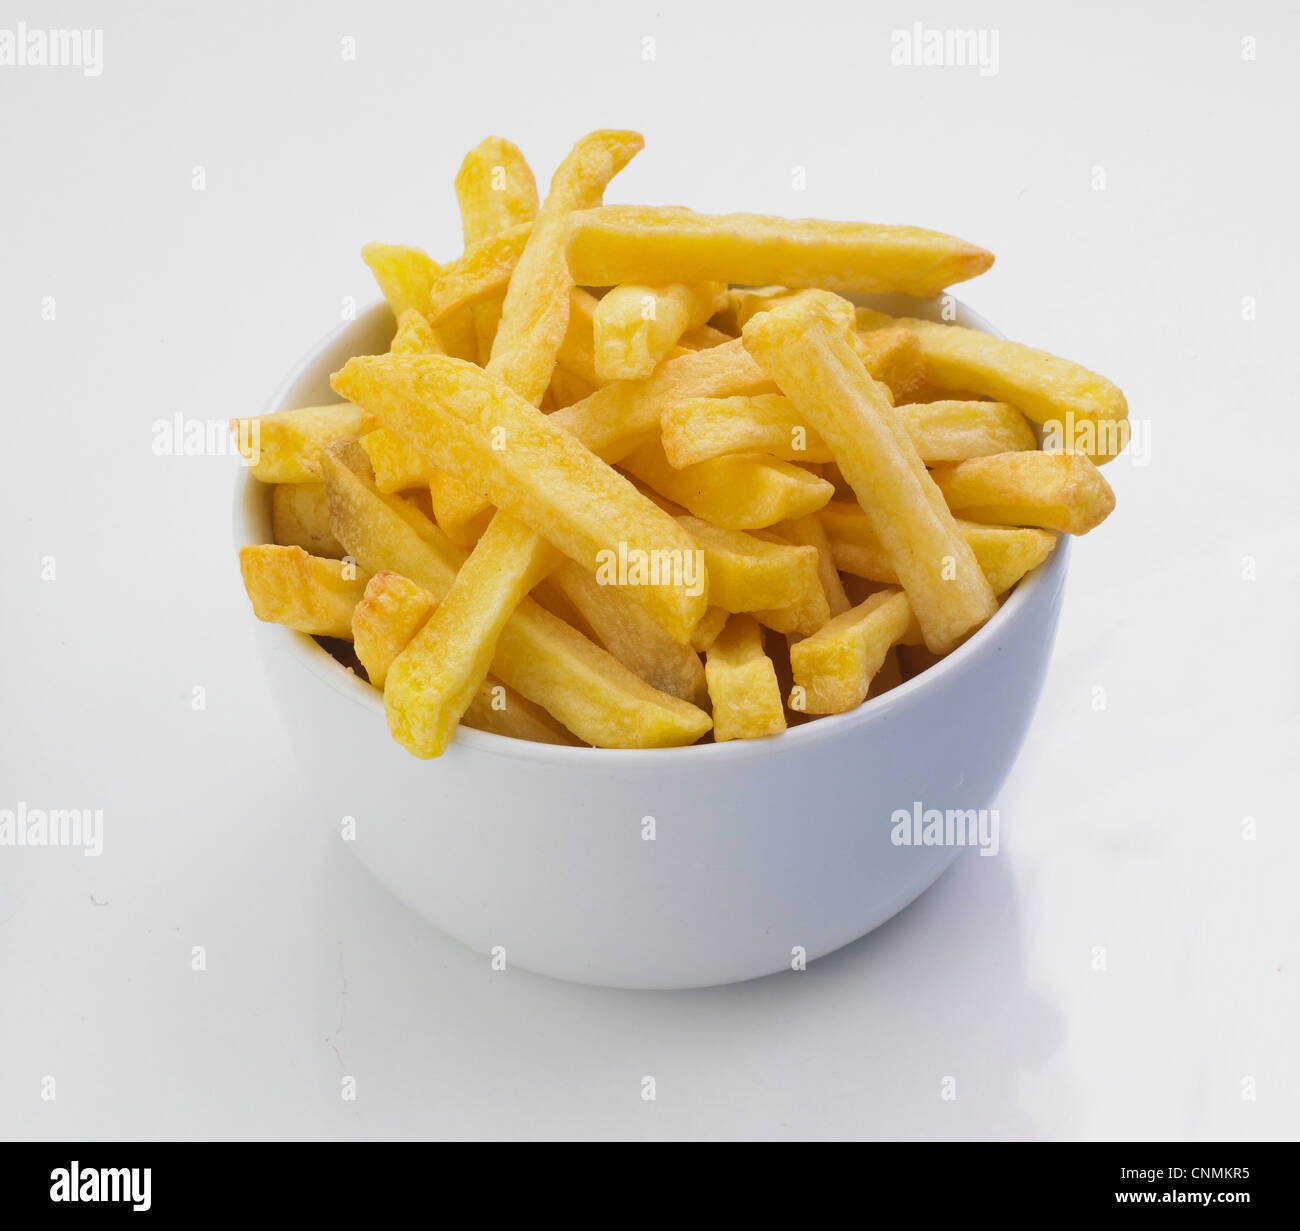 Chips, french fries, cutout - Stock Image